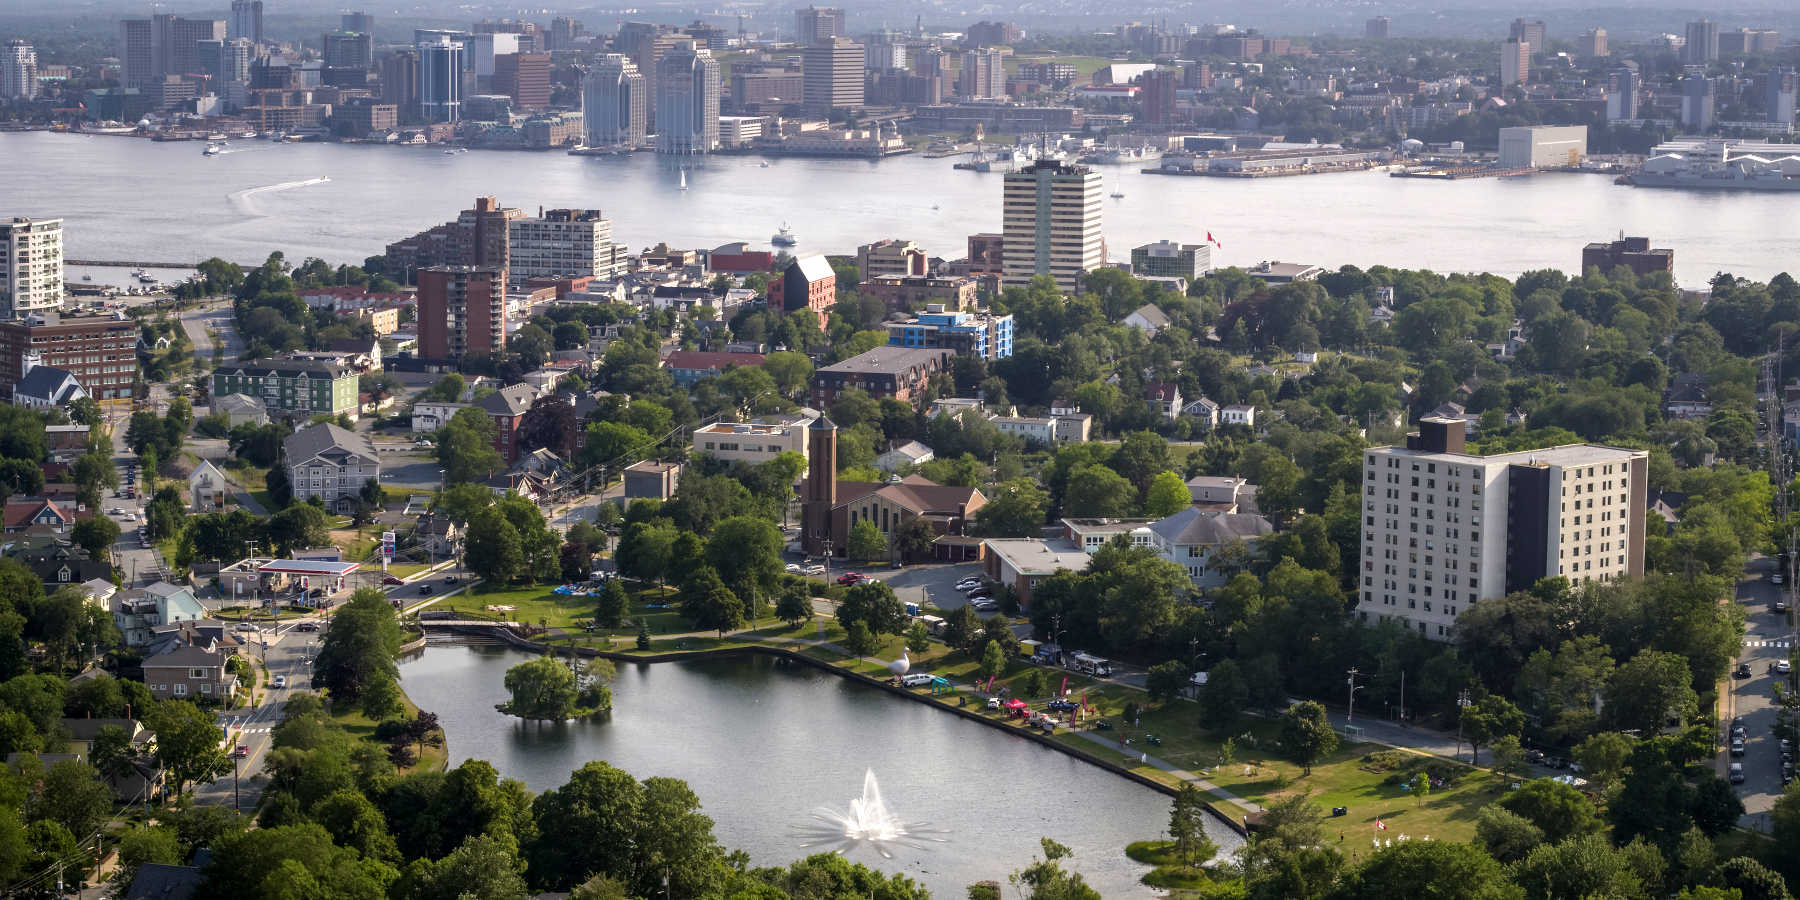 Beautiful Aerial Photo of Downtown Dartmouth, Halifax Waterfront, and Halifax Harbour